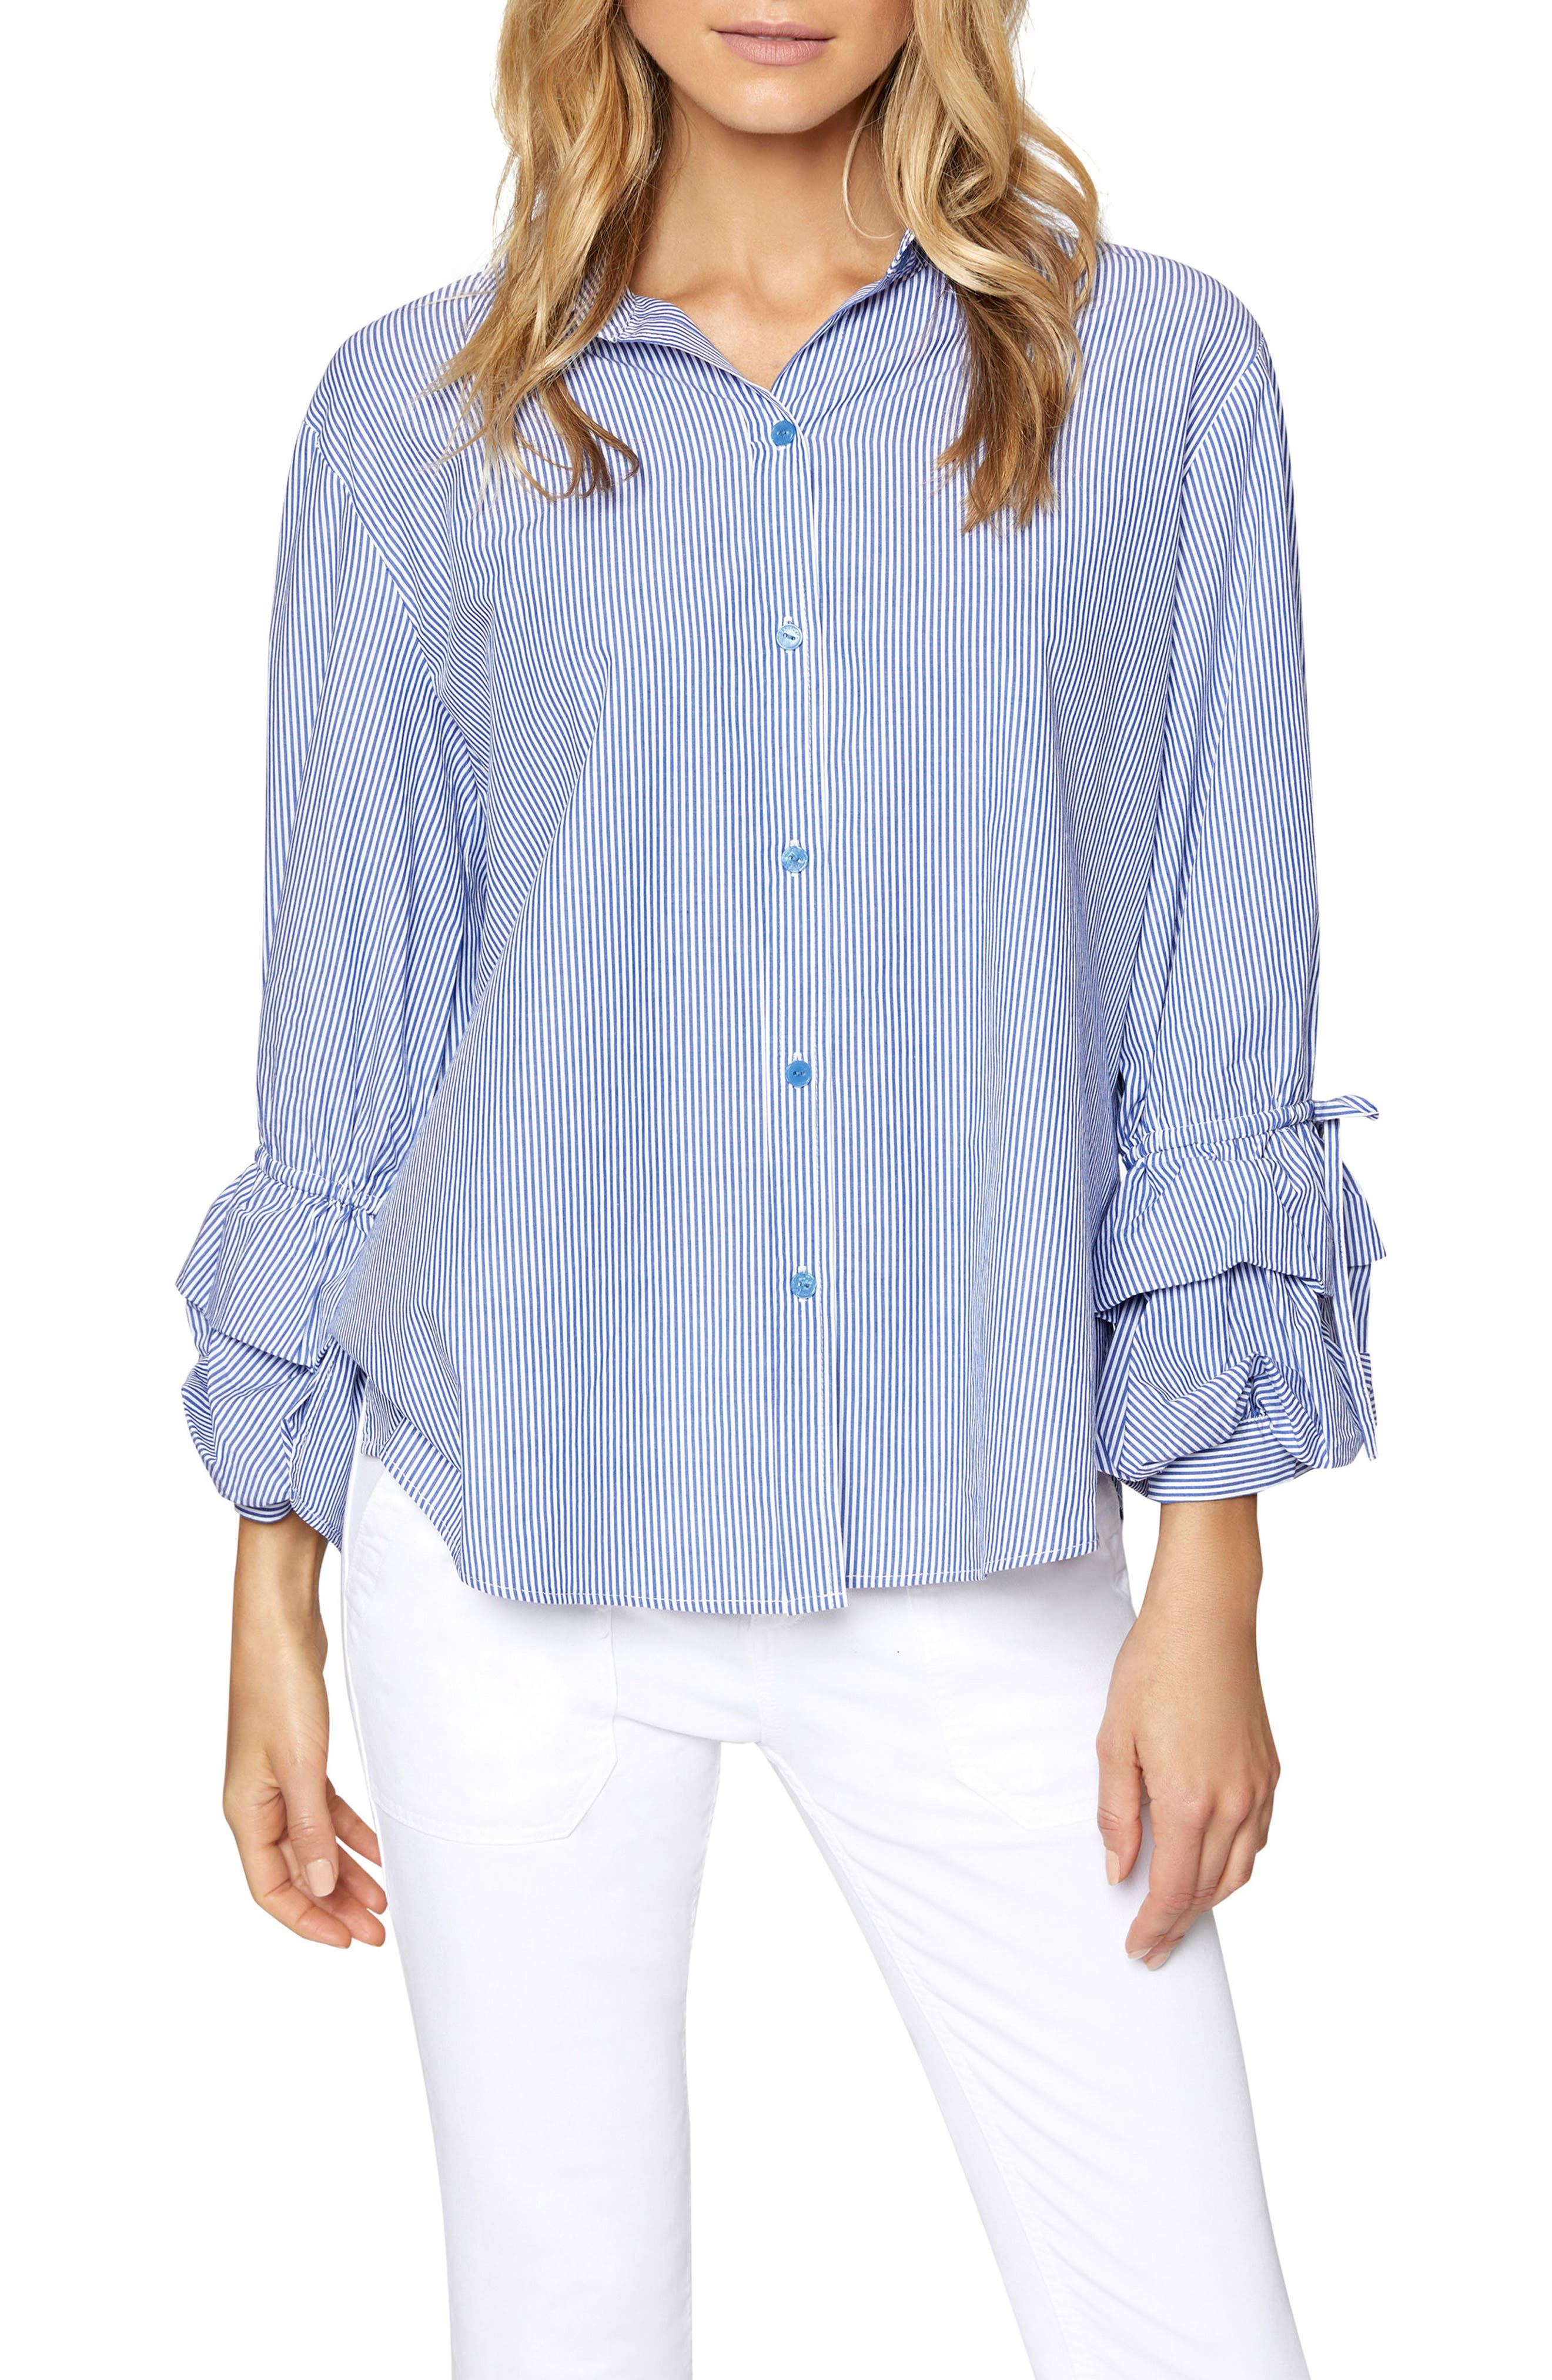 Frankie Ruffle Sleeve Shirt,                             Alternate thumbnail 4, color,                             422